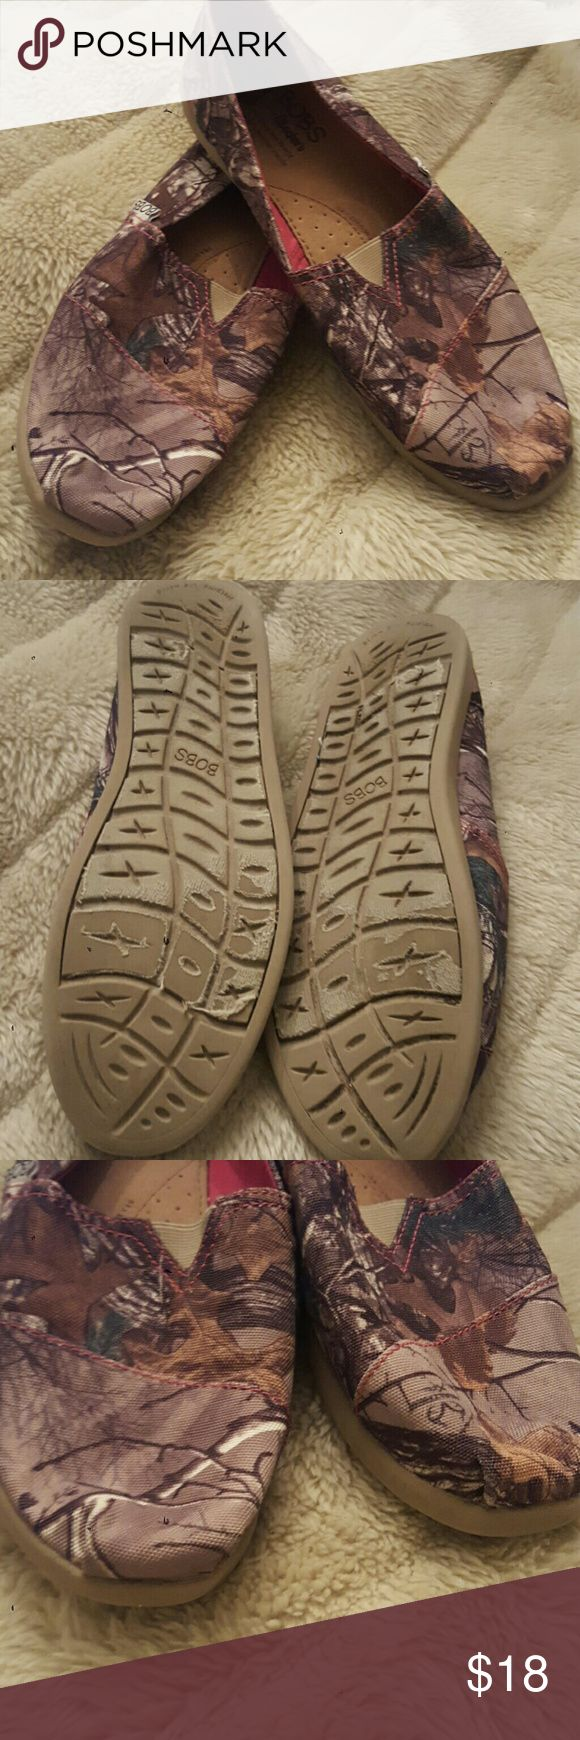 Bob shoes women's shoes Worn 1 time women's size 10 bobs Shoes Flats & Loafers